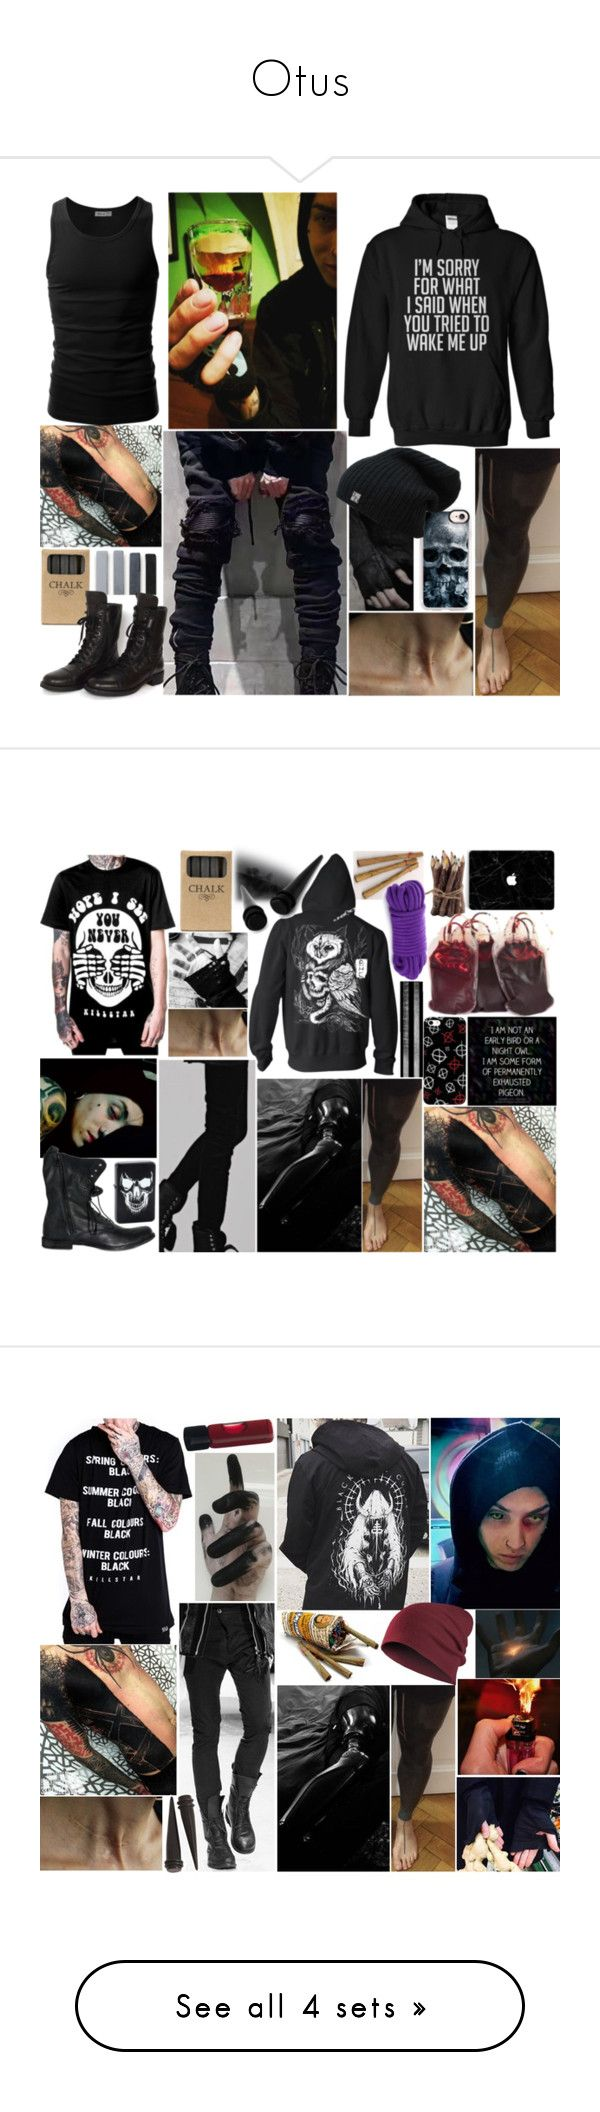 """""""Otus"""" by thwgi ❤ liked on Polyvore featuring Casetify, Jayson Home, Doublju, ISABEL BENENATO, Chanel, men's fashion, menswear, Black Hope Curse, LD Tuttle and Cost Plus World Market"""